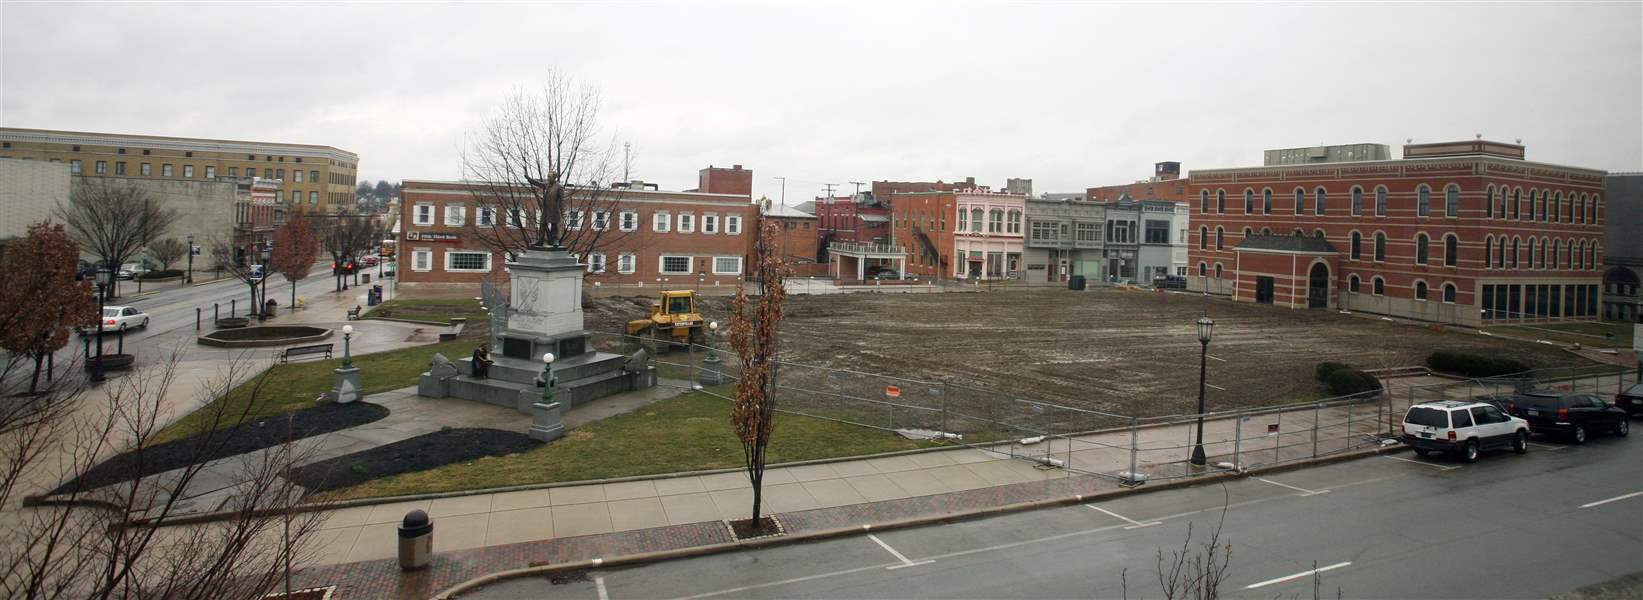 Vacant-site-that-was-once-the-Seneca-County-Courthouse